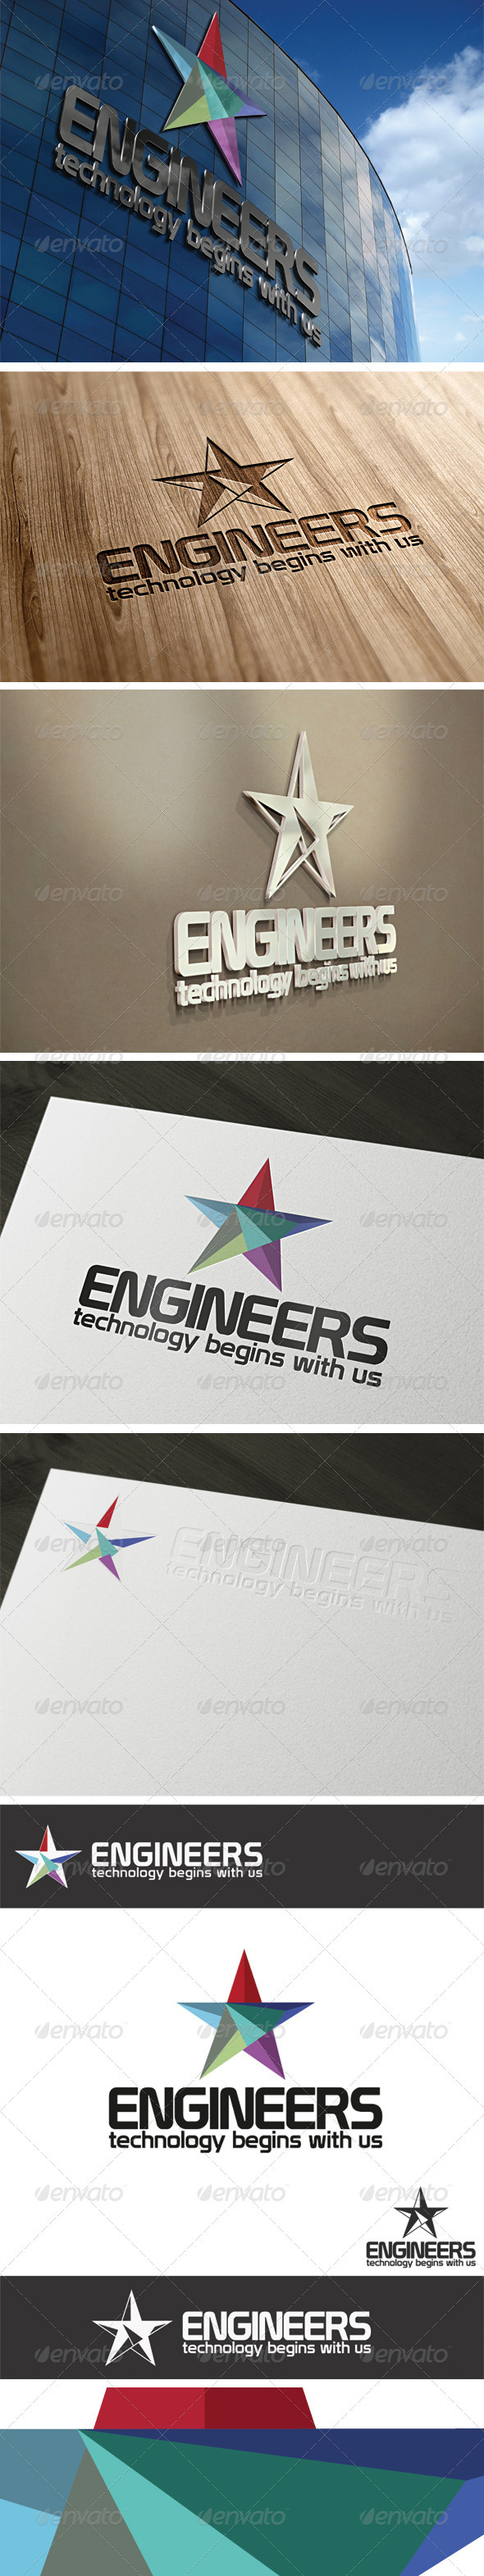 Engineers Logo Template - Vector Abstract